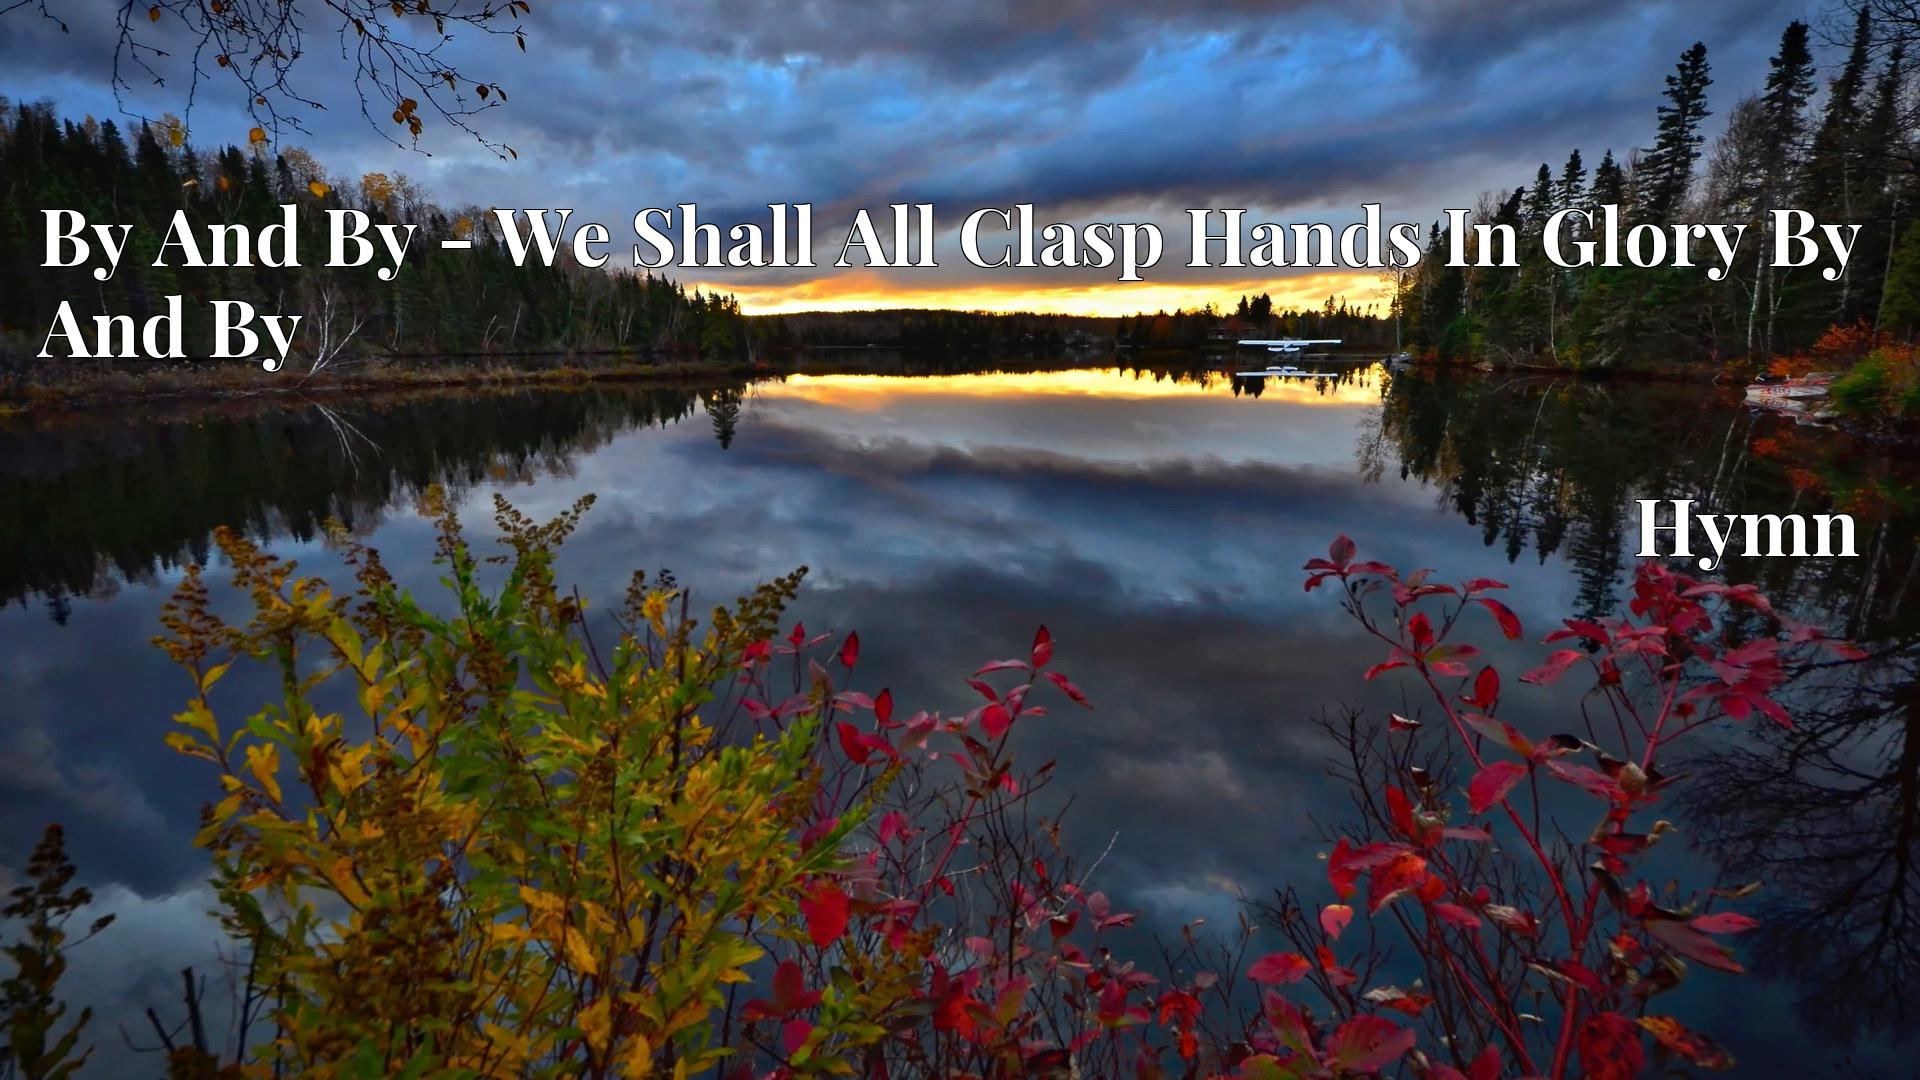 By And By - We Shall All Clasp Hands In Glory By And By Hymn